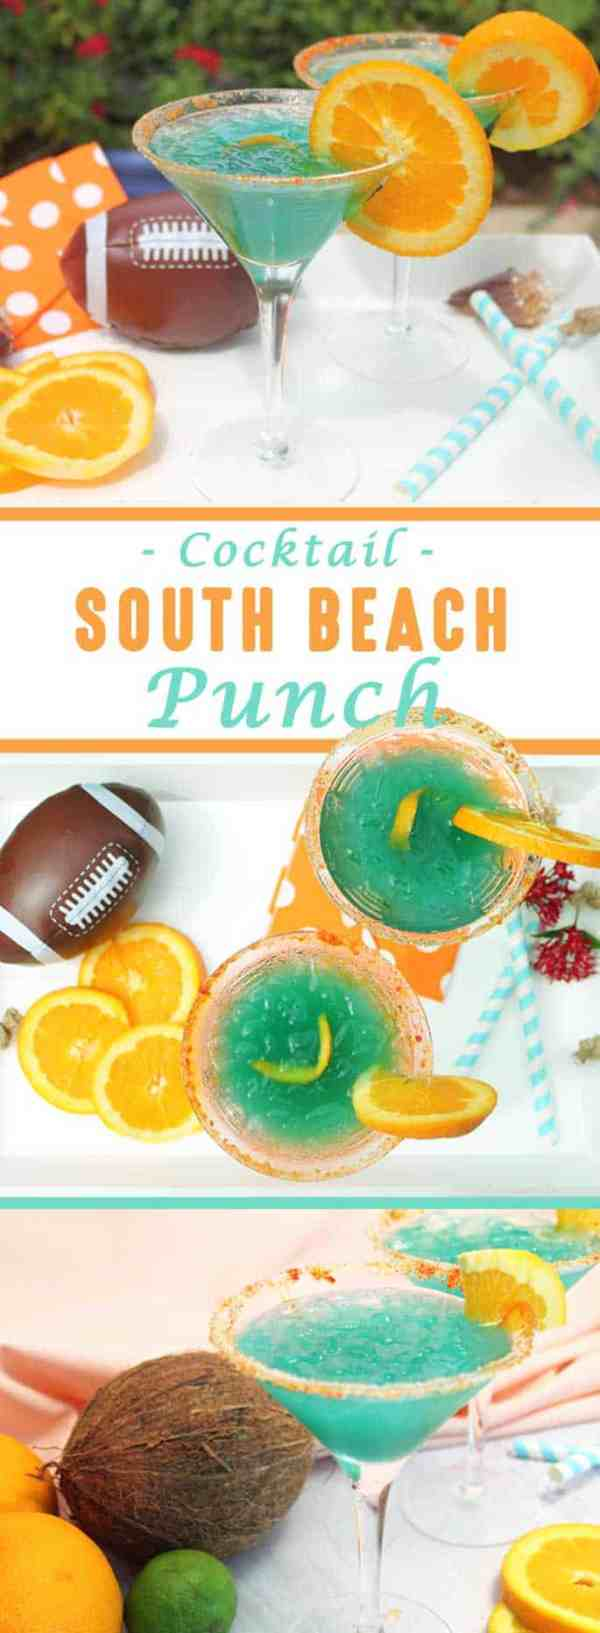 South Beach Punch Cocktail | 2 Cookin Mamas Get a taste of the tropics with our South Beach Punch. An effervescent cocktail with coconut rum, curacao and a sparkling orange juice.